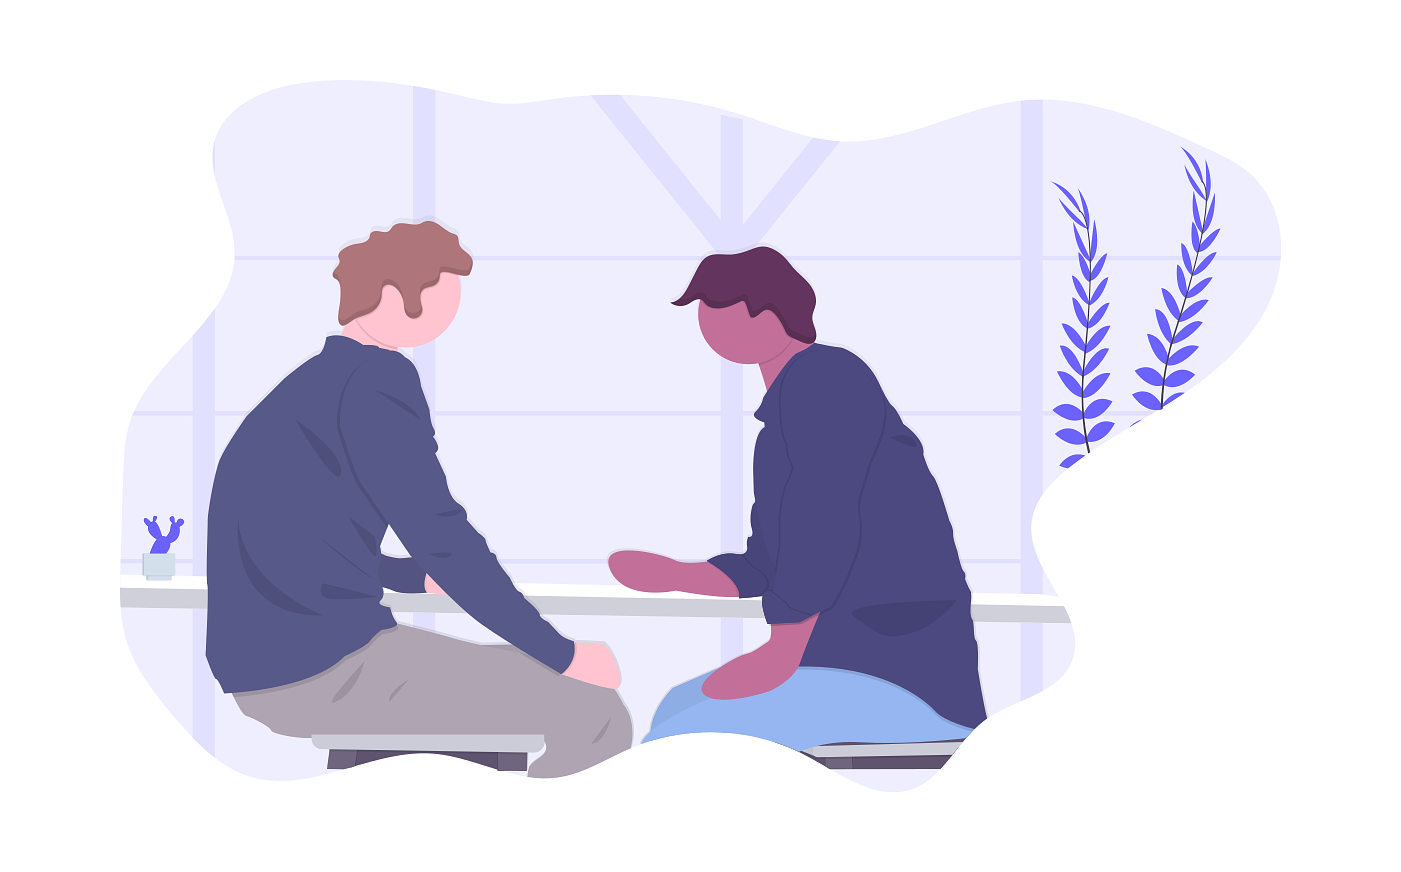 learn how to be a better product manager by communicating and crafting the right stories. stories to different stakeholders should be personal